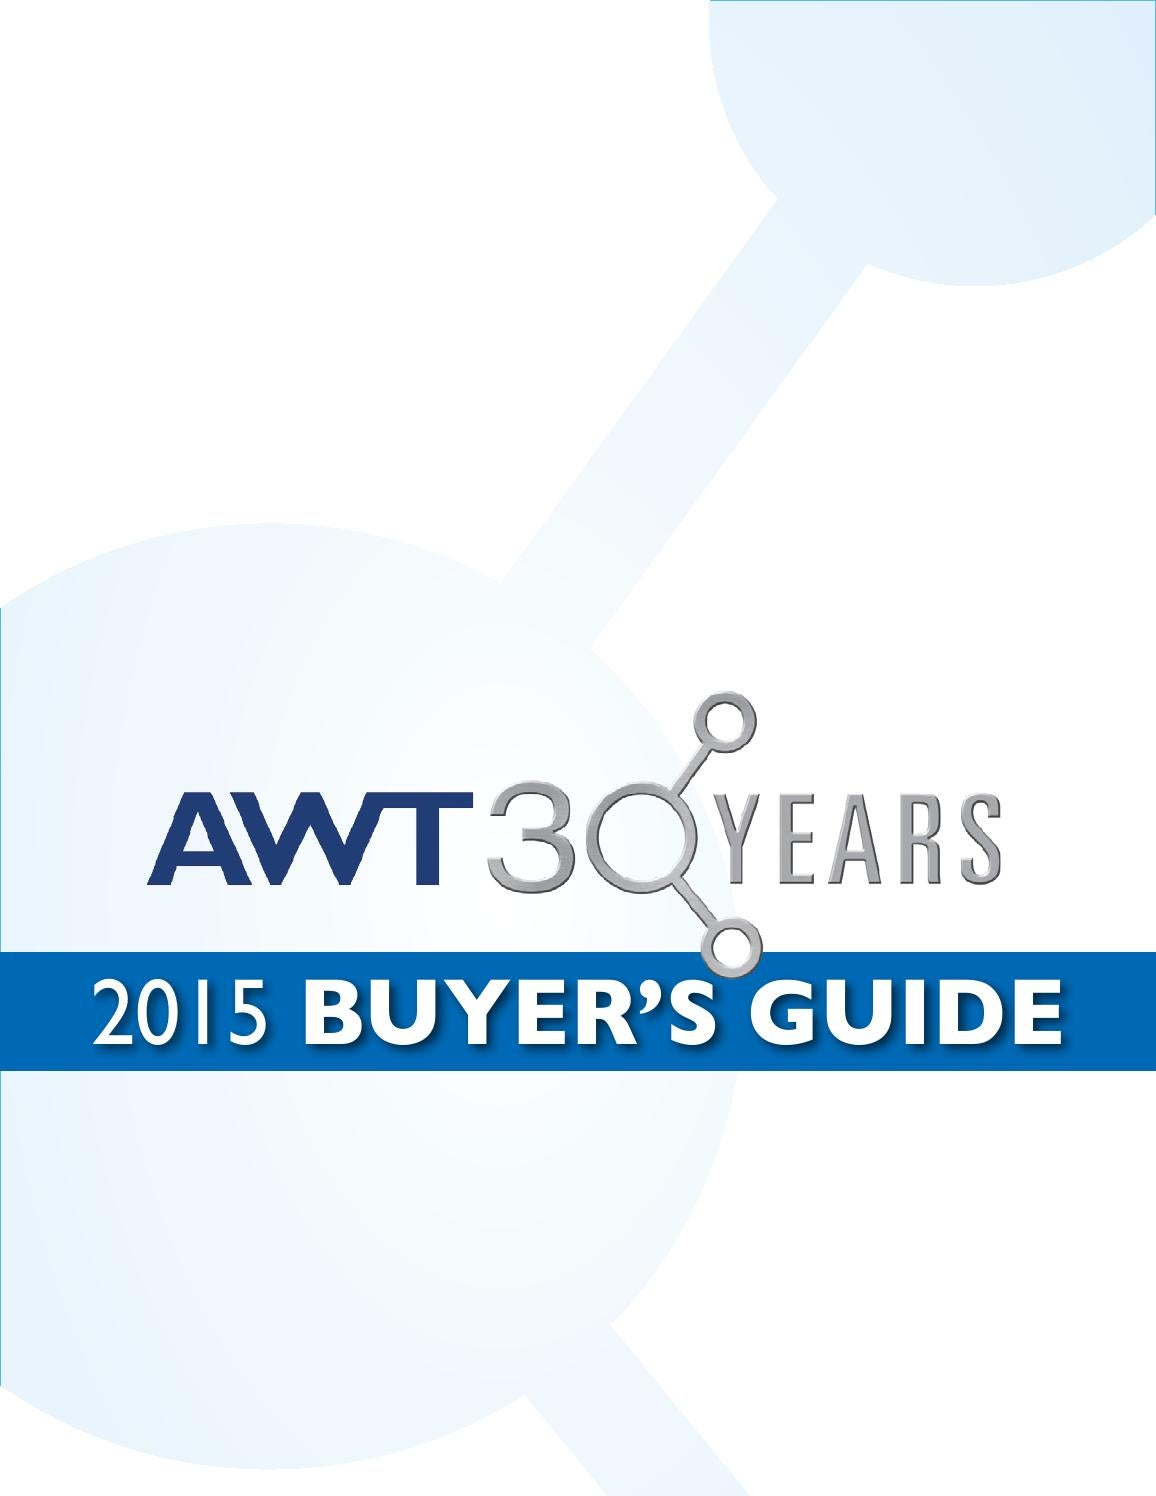 AWT Buyer's Guide 2015 by Association of Water Technologies